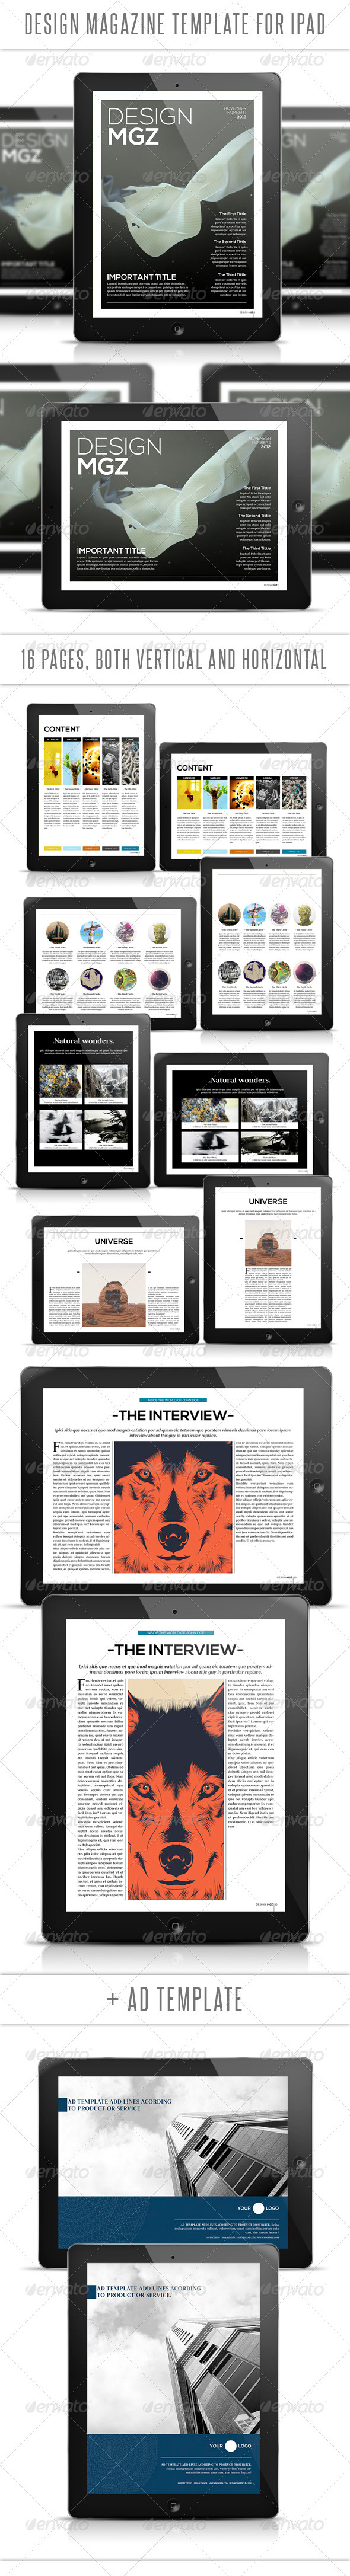 GraphicRiver Design Tablet Magazine Template 3267527